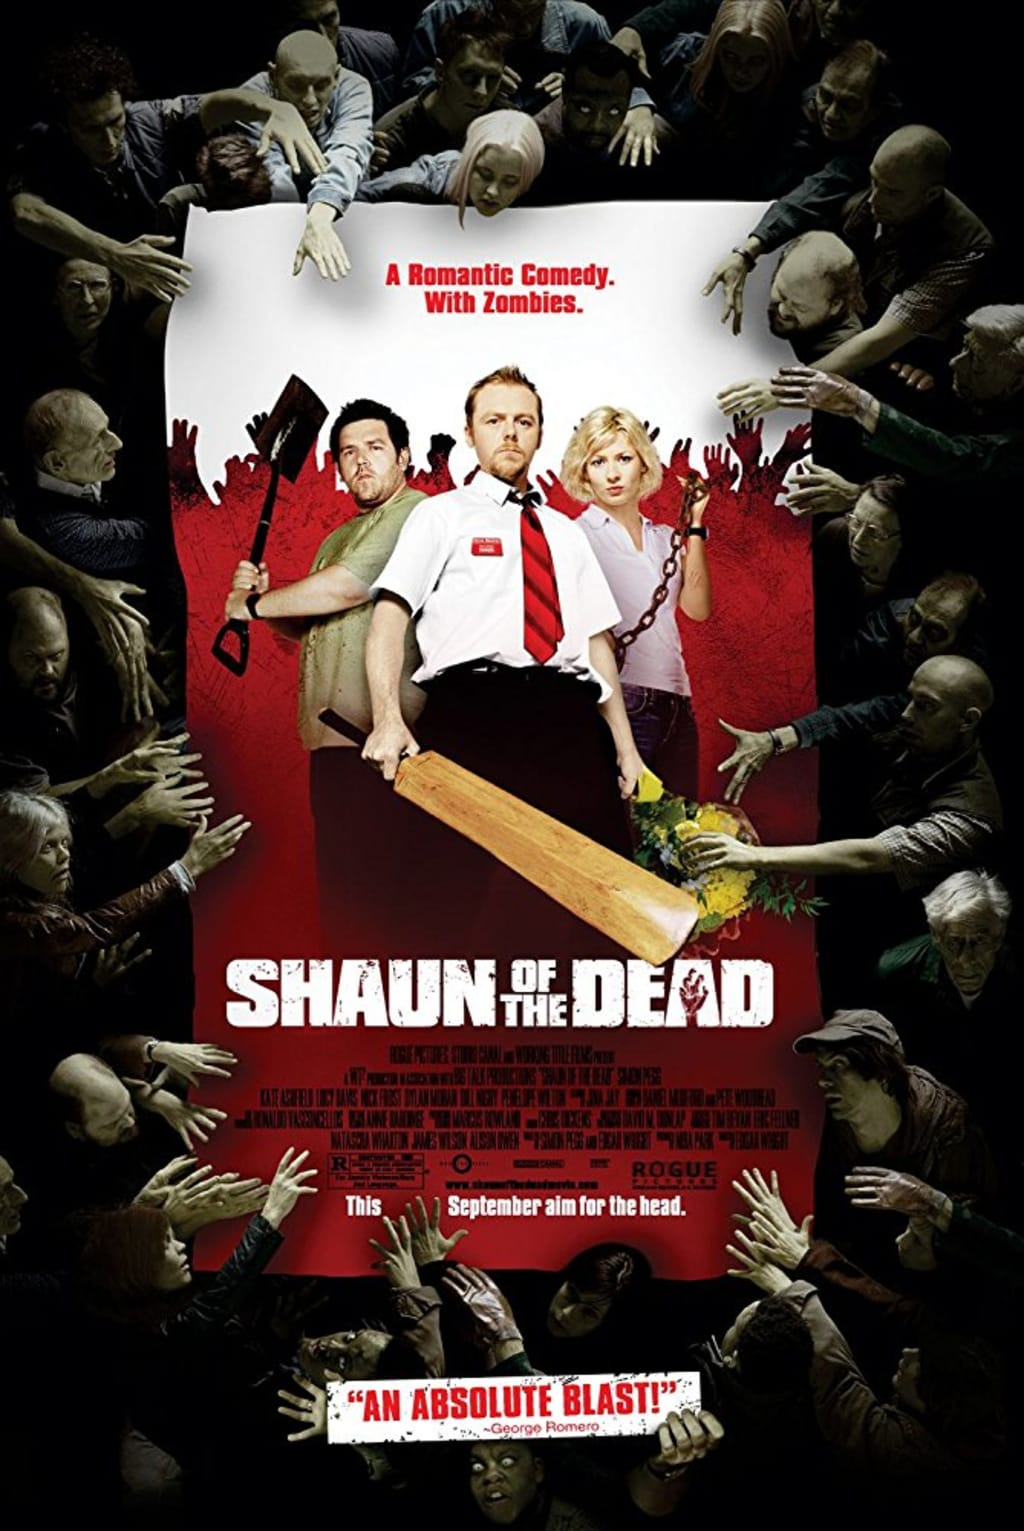 Reed Alexander's Horror Review Compares 'Shaun of the Dead'(2004) and 'Zombieland' (2009)